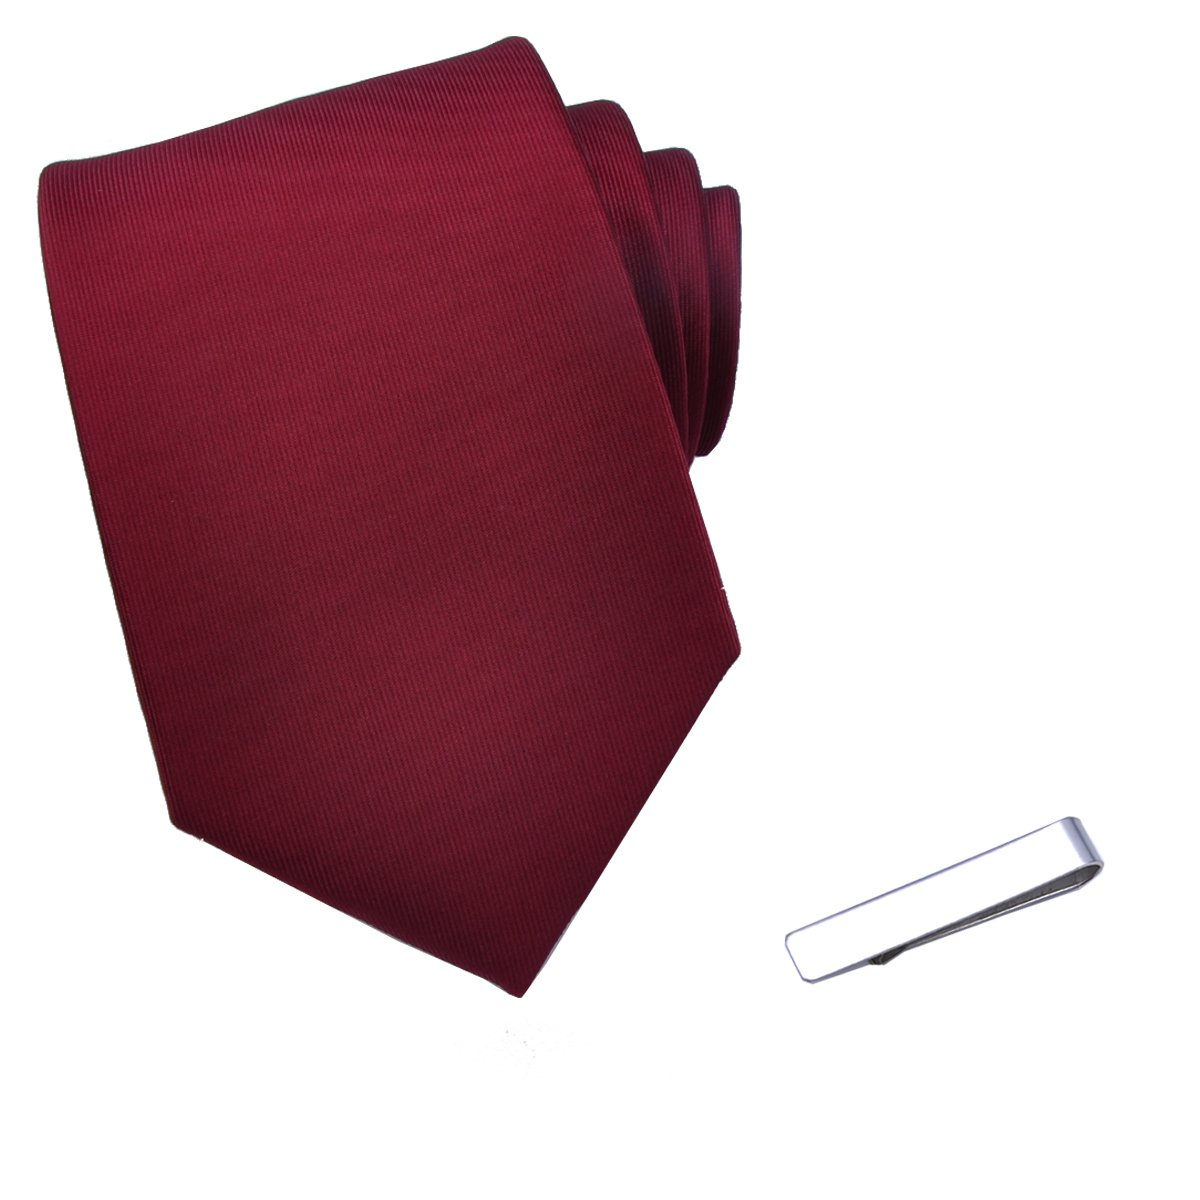 JESLANG Men's Solid Color Neck Ties and Simple Tie Clip Set Multiple Colors